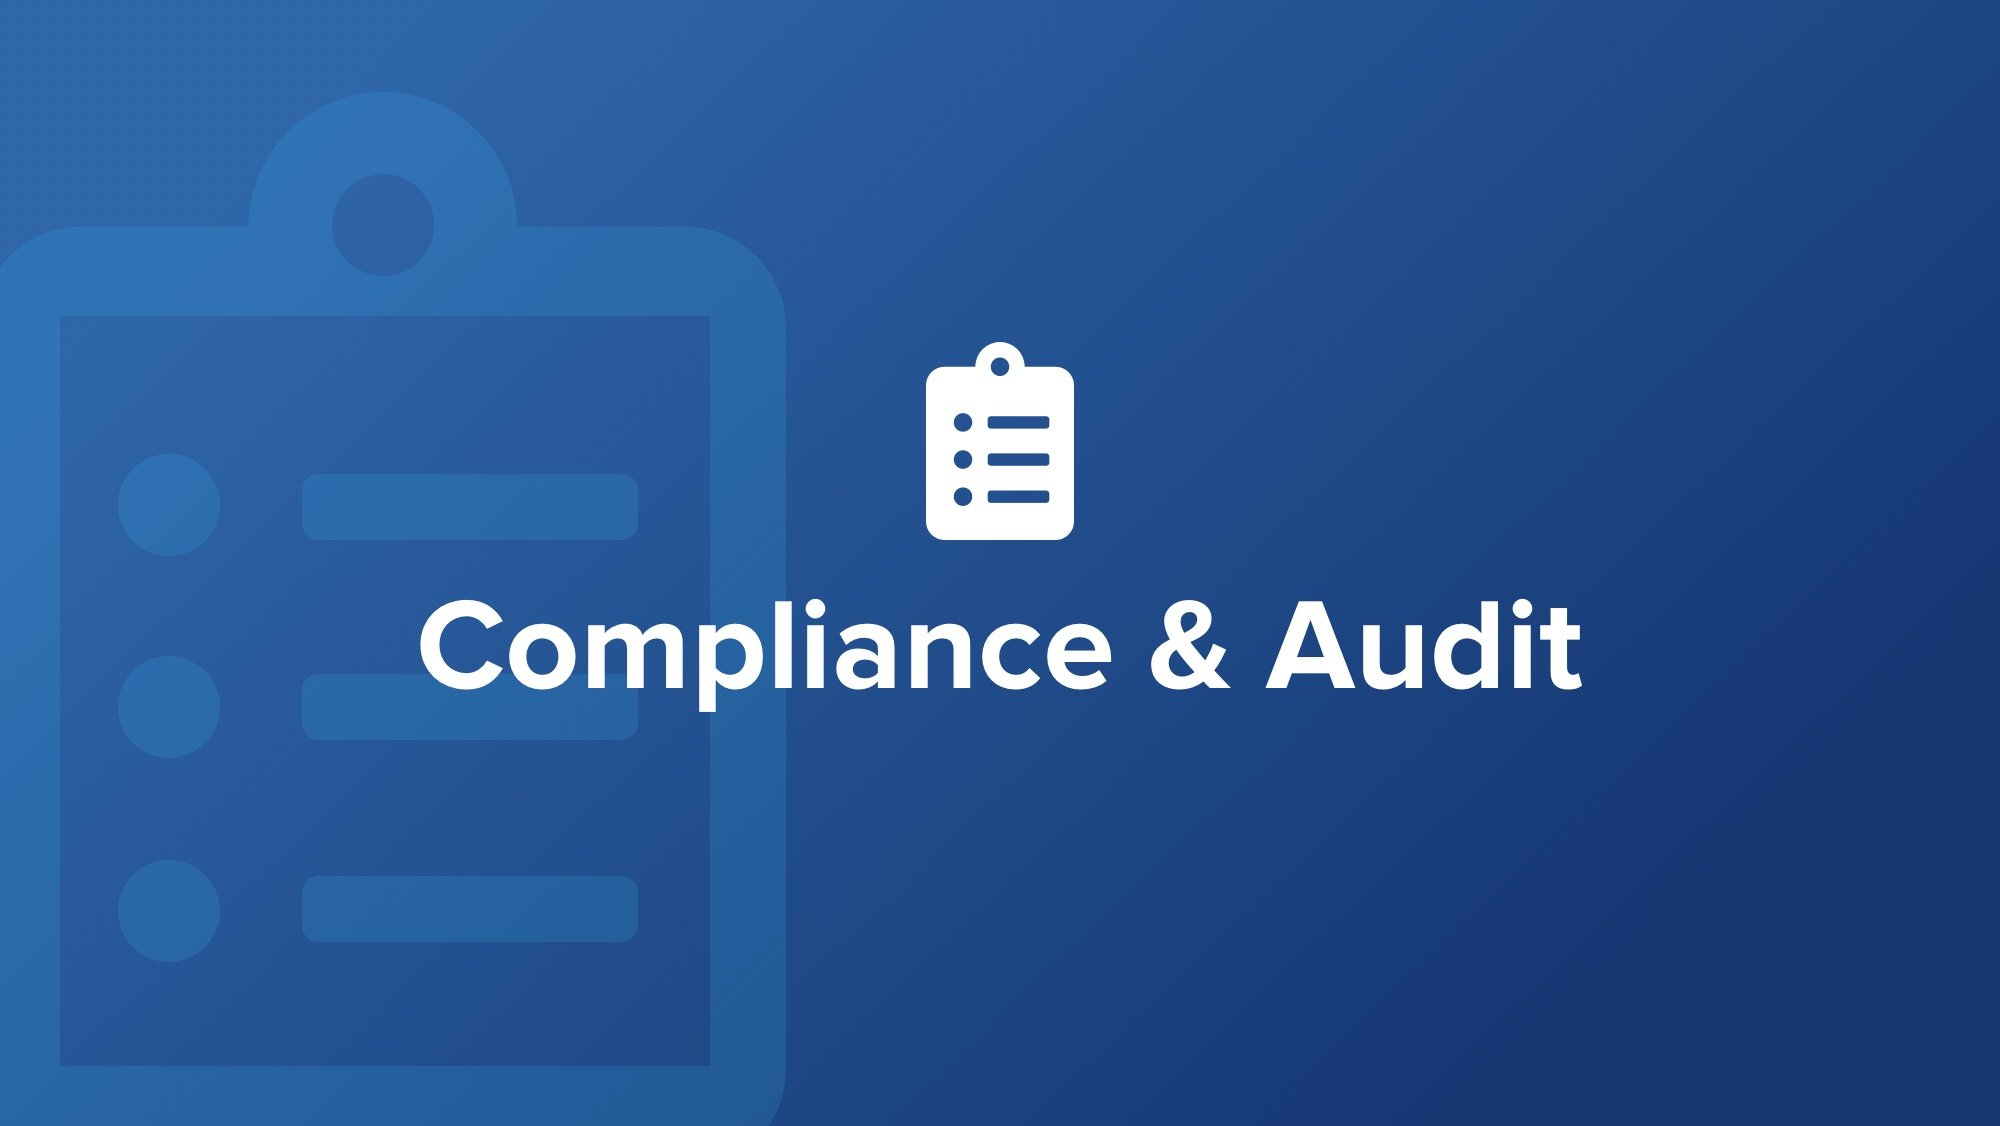 Compliance and Audits@2x